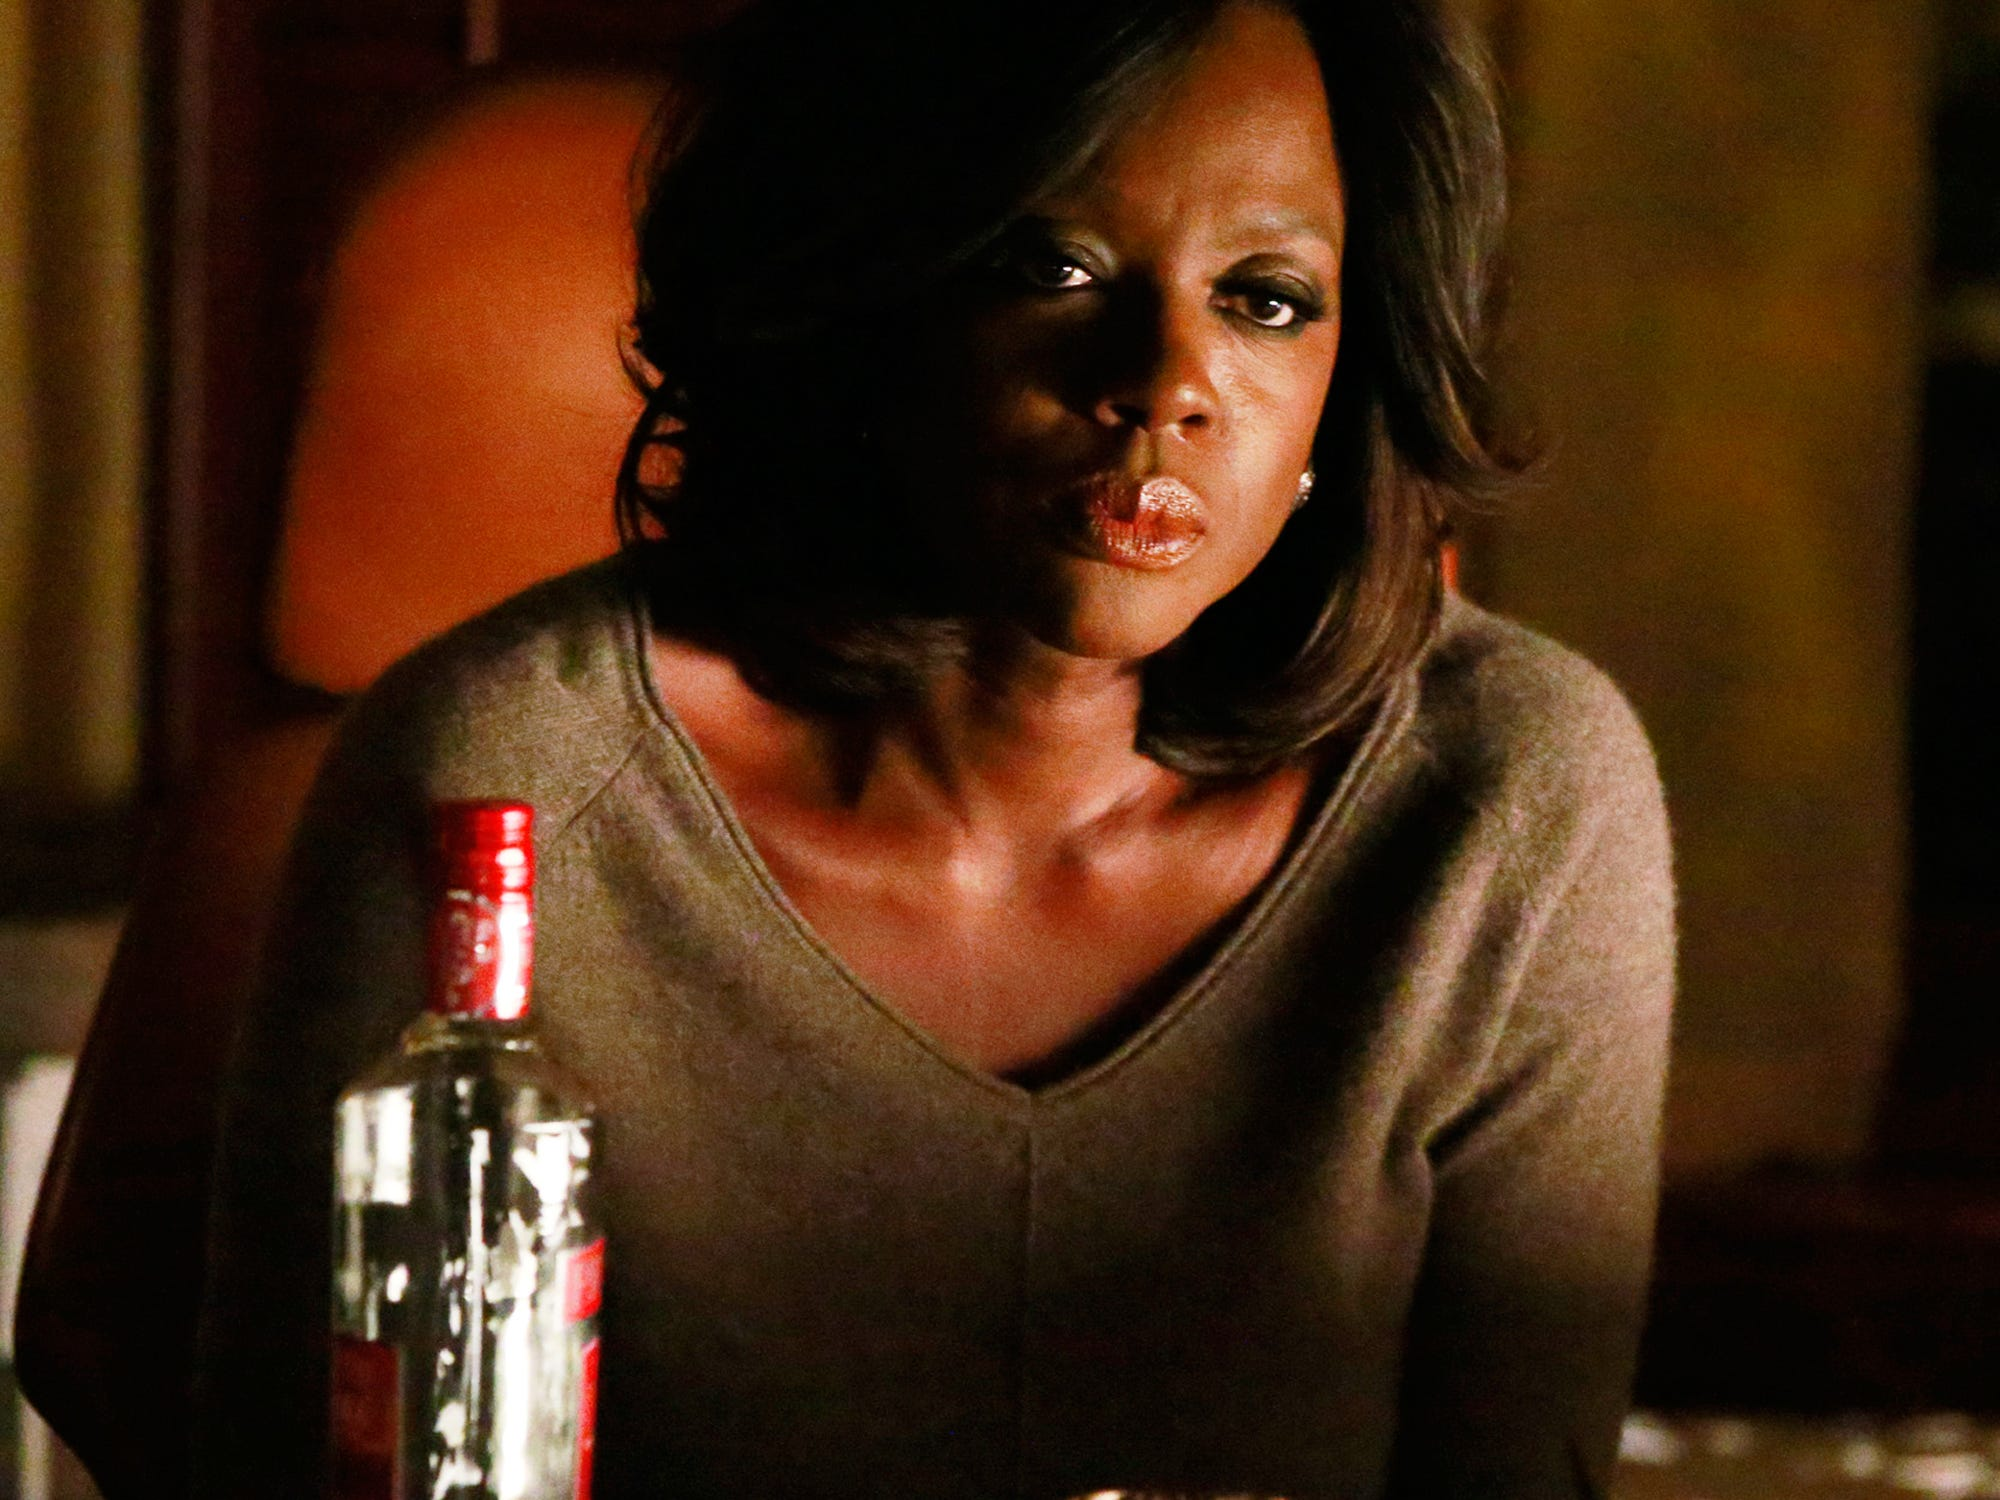 How to get away with murder season 2 episode 14 recap ccuart Gallery